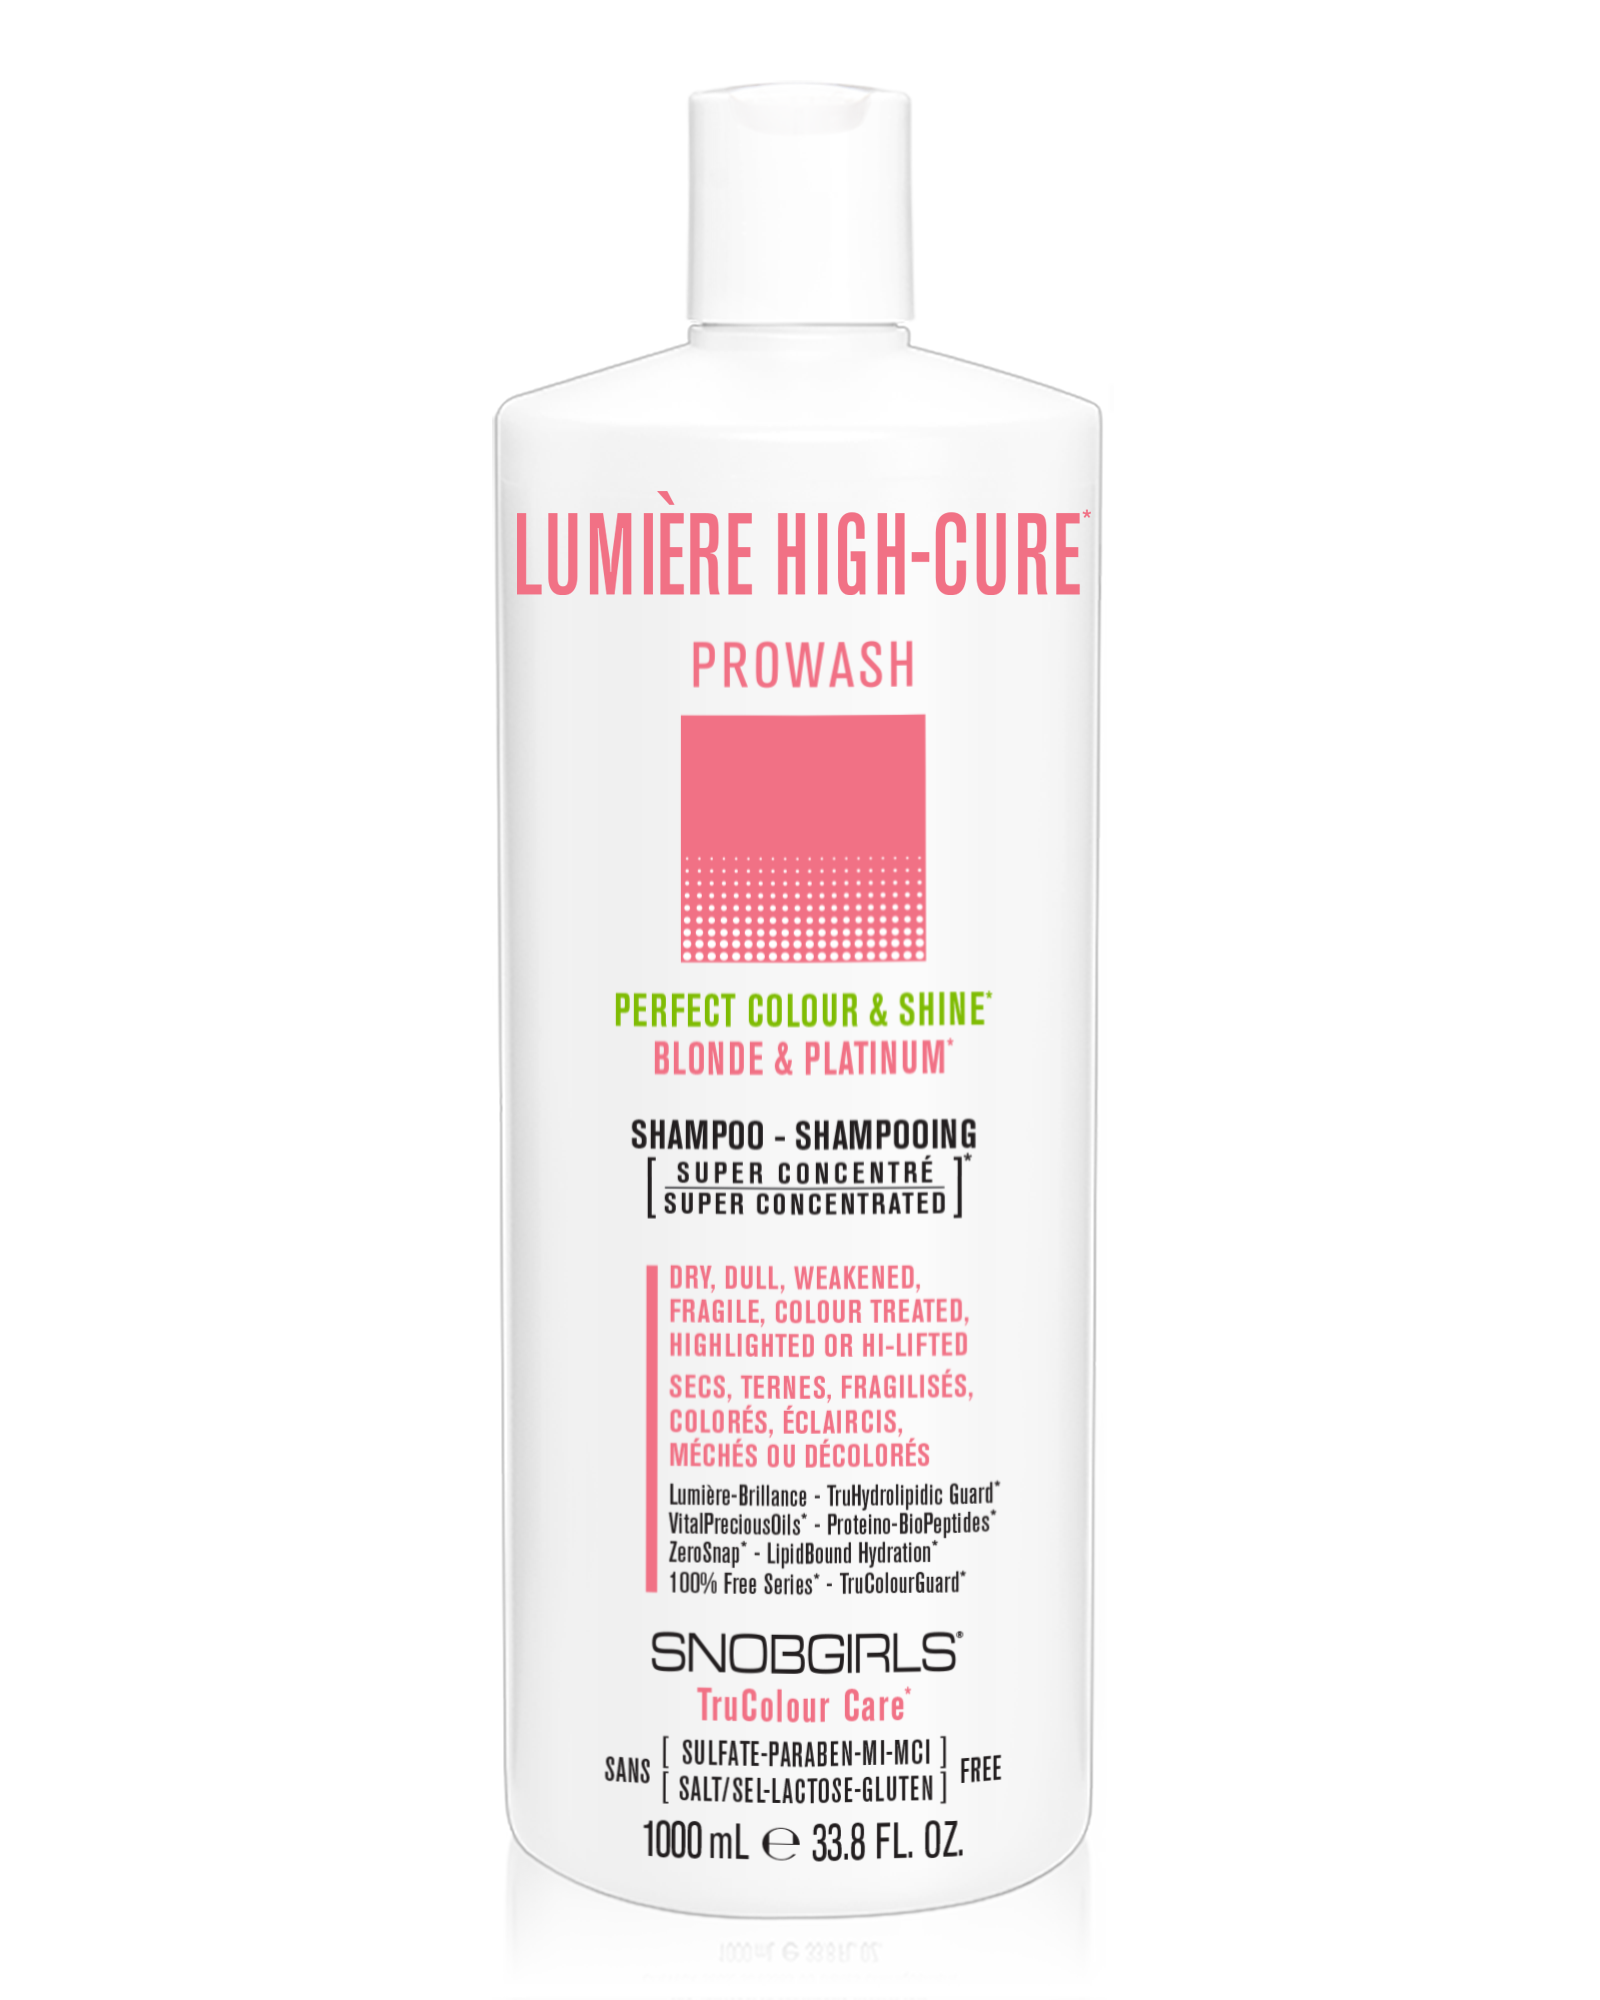 LUMIERE HIGH-CURE Perfect Colour & Shine Prowash (shampoo) - SNOBGIRLS.com